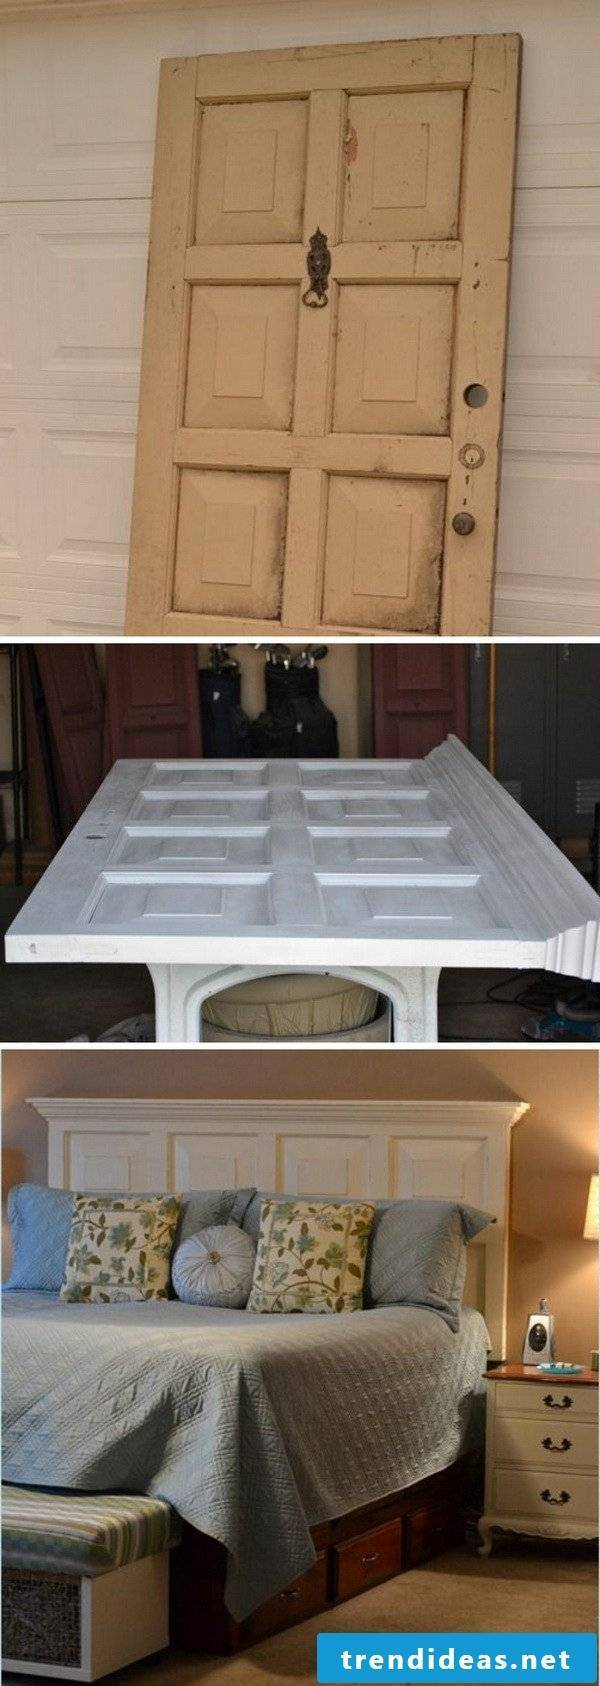 DIY furniture with old doors